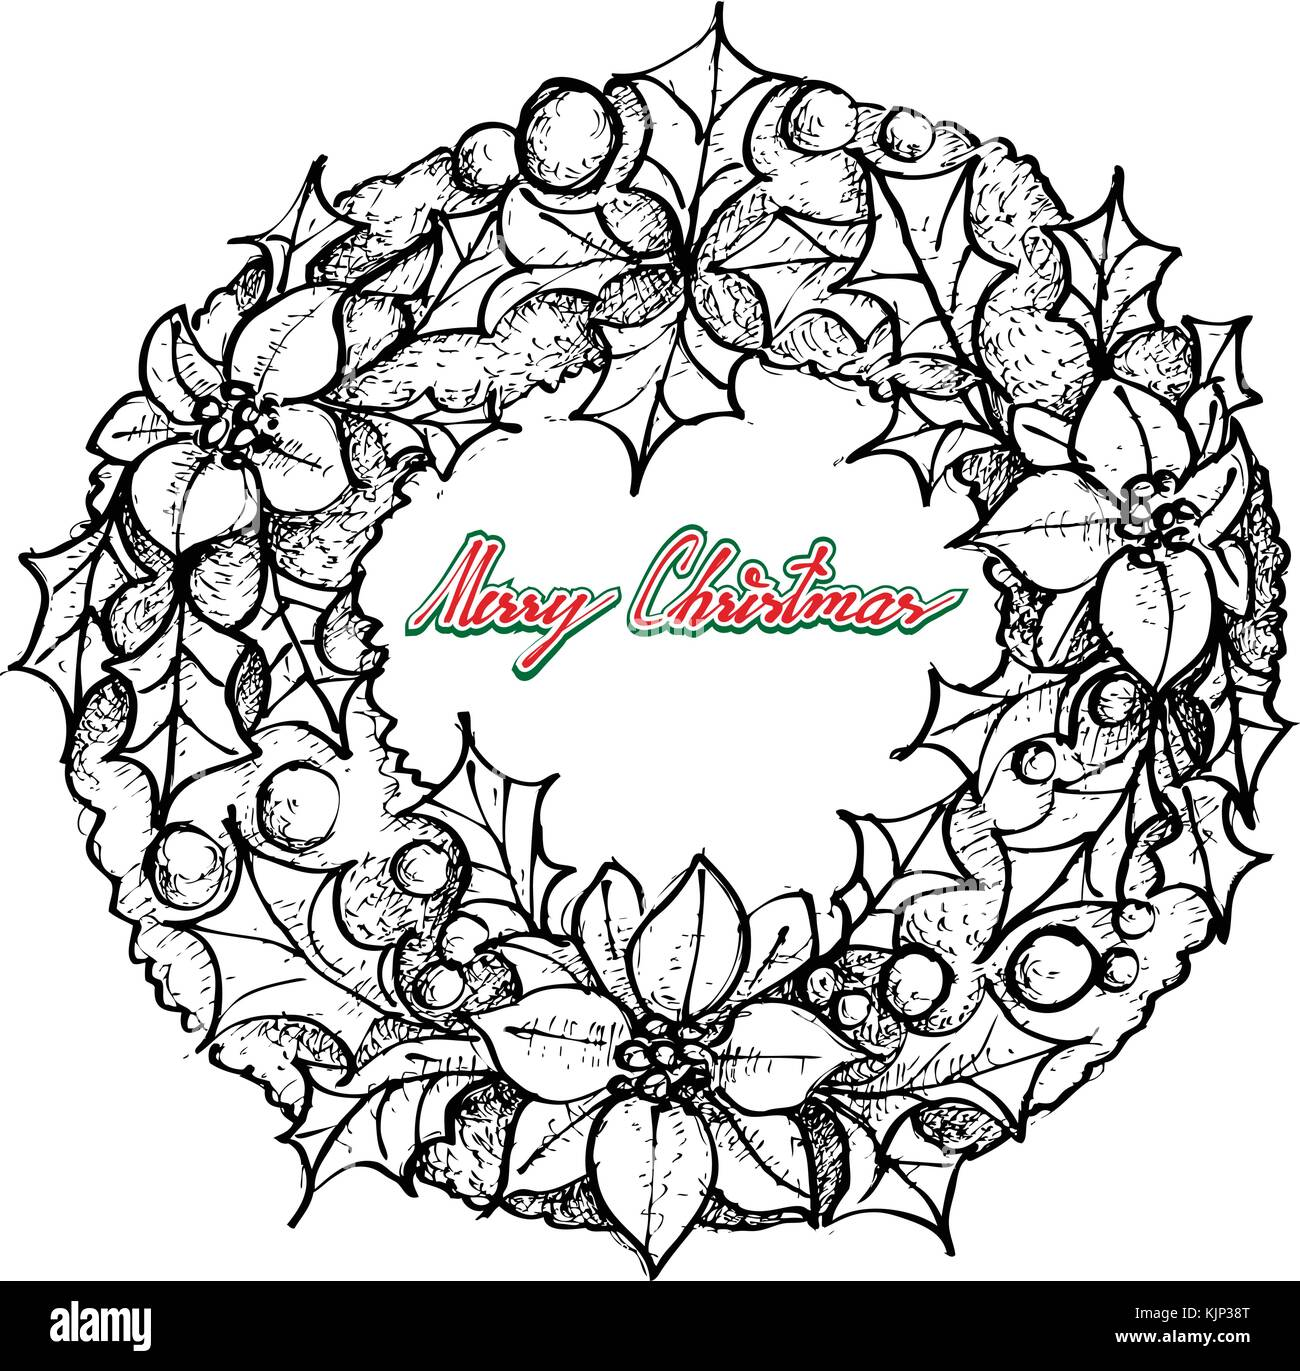 Drawings Of Christmas Wreaths.Illustration Hand Drawn Sketch Of A Beautiful Christmas